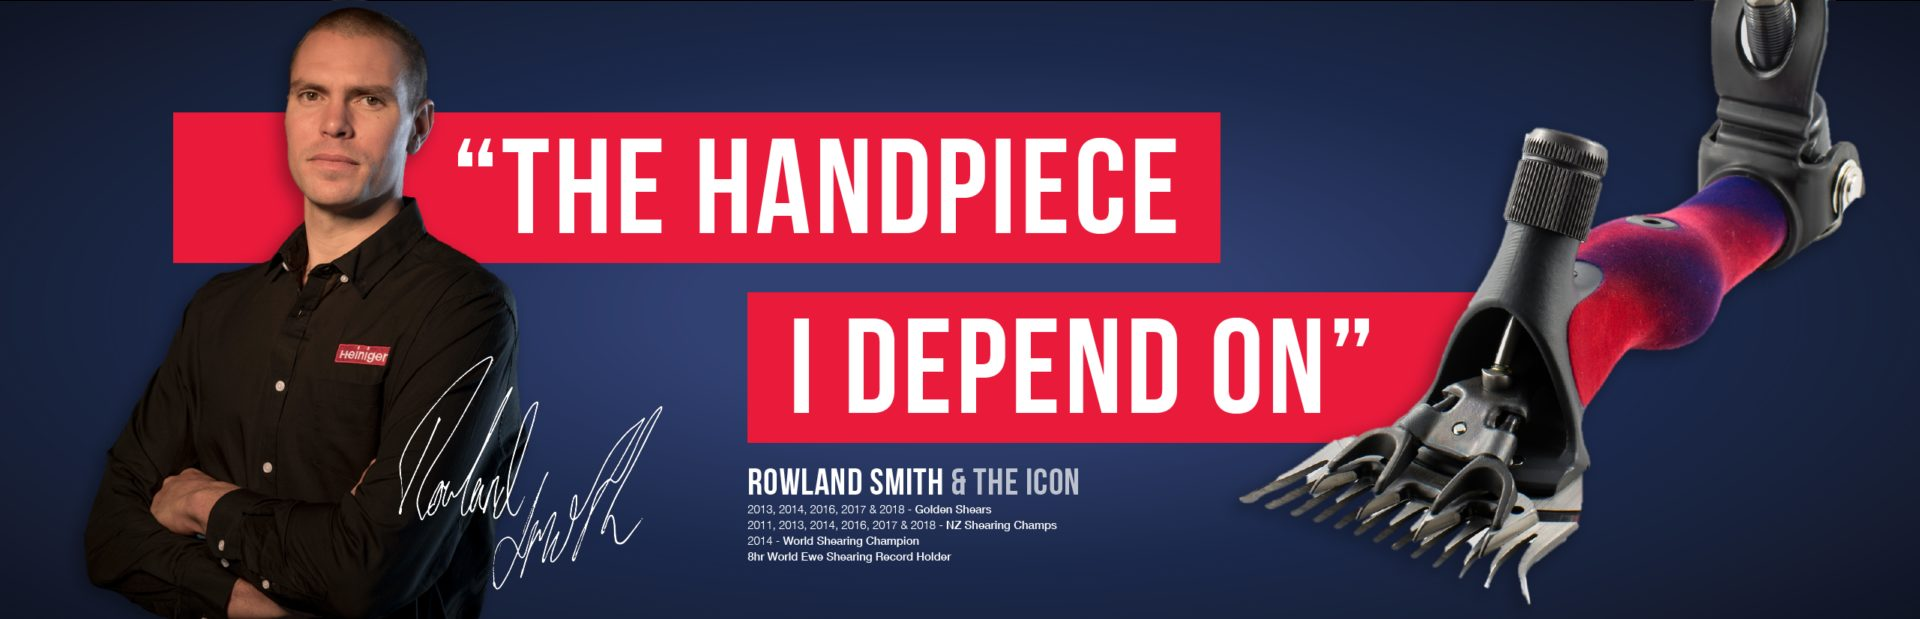 Hnz Rowland Smith Handpiece 13